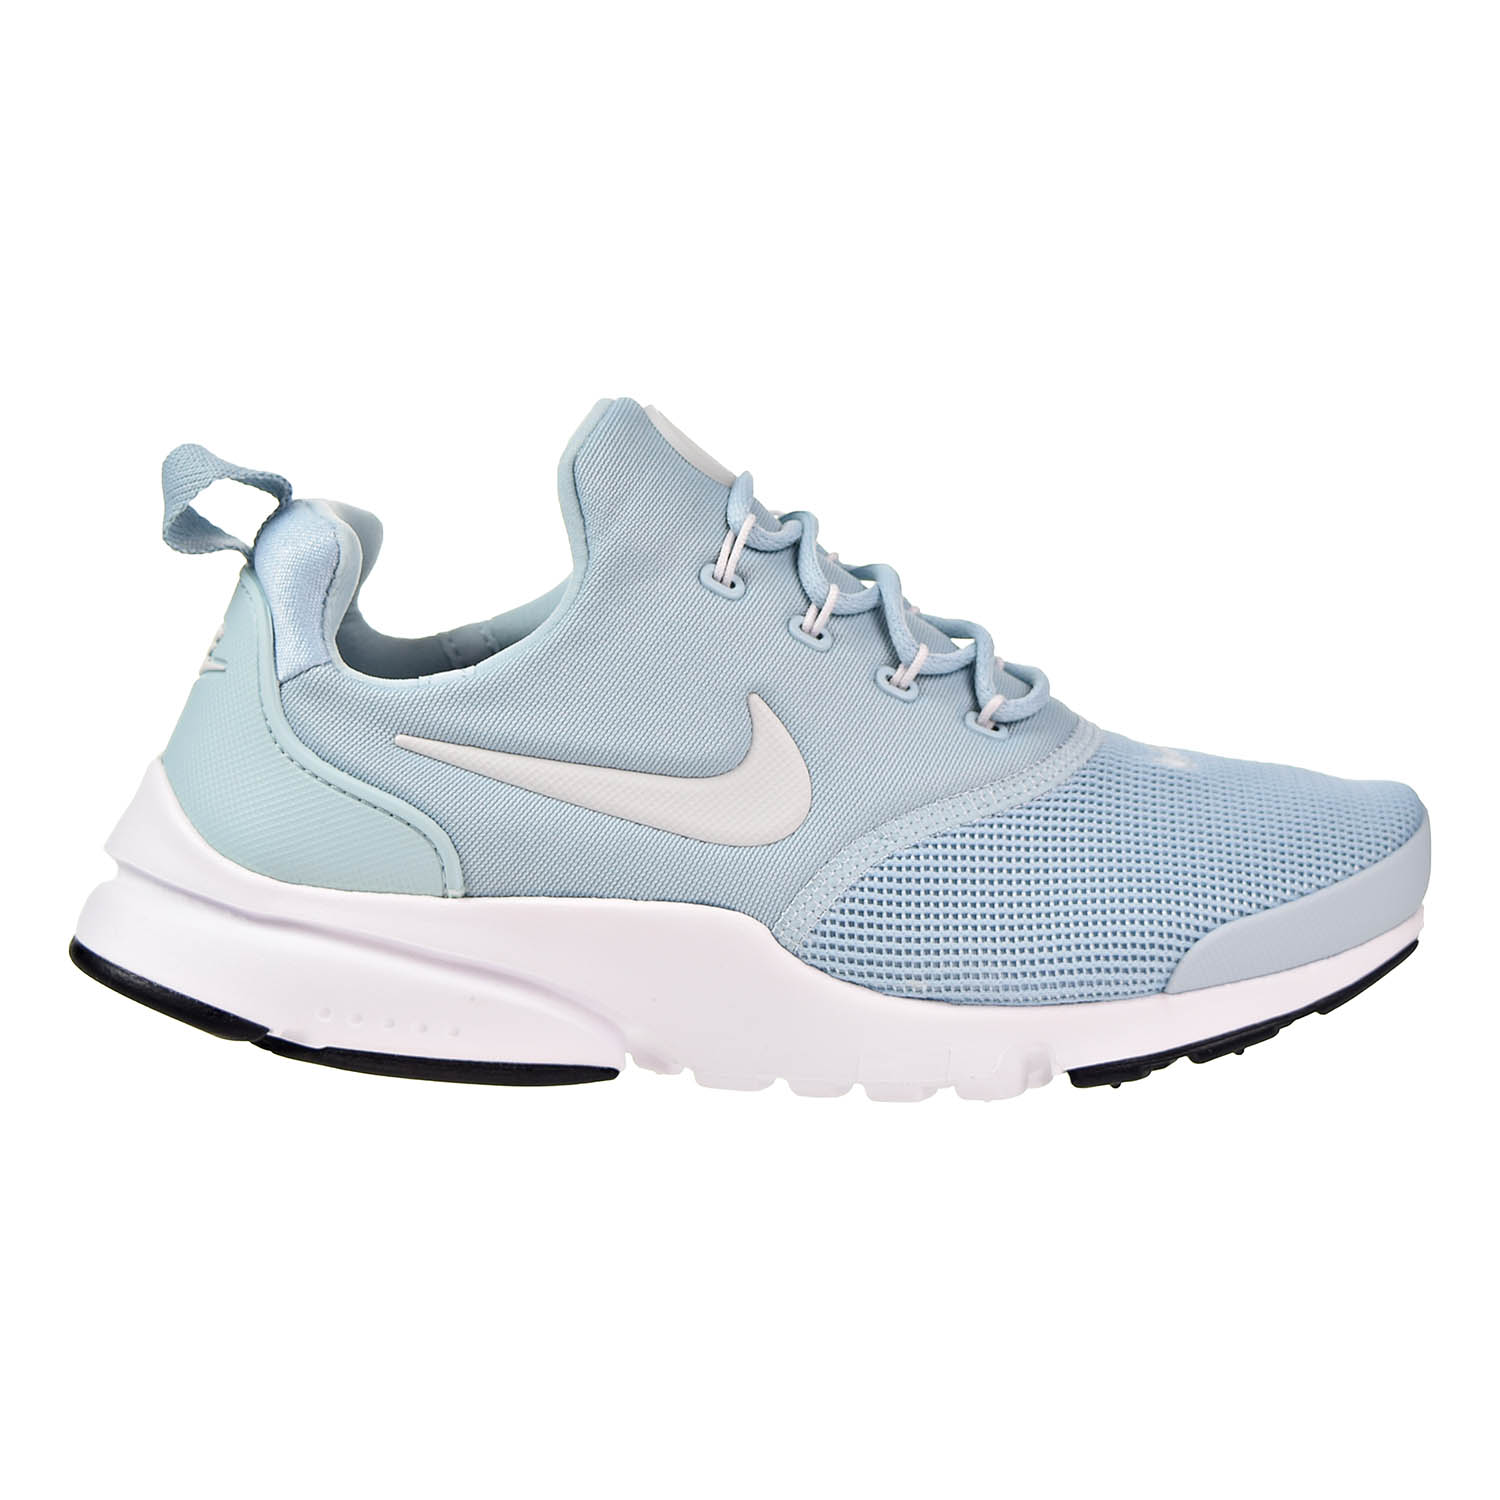 efcf1e608f421 Details about Nike Presto fly (GS) Big Kids Shoes Ocean Bliss Pure Platinum  913967-401